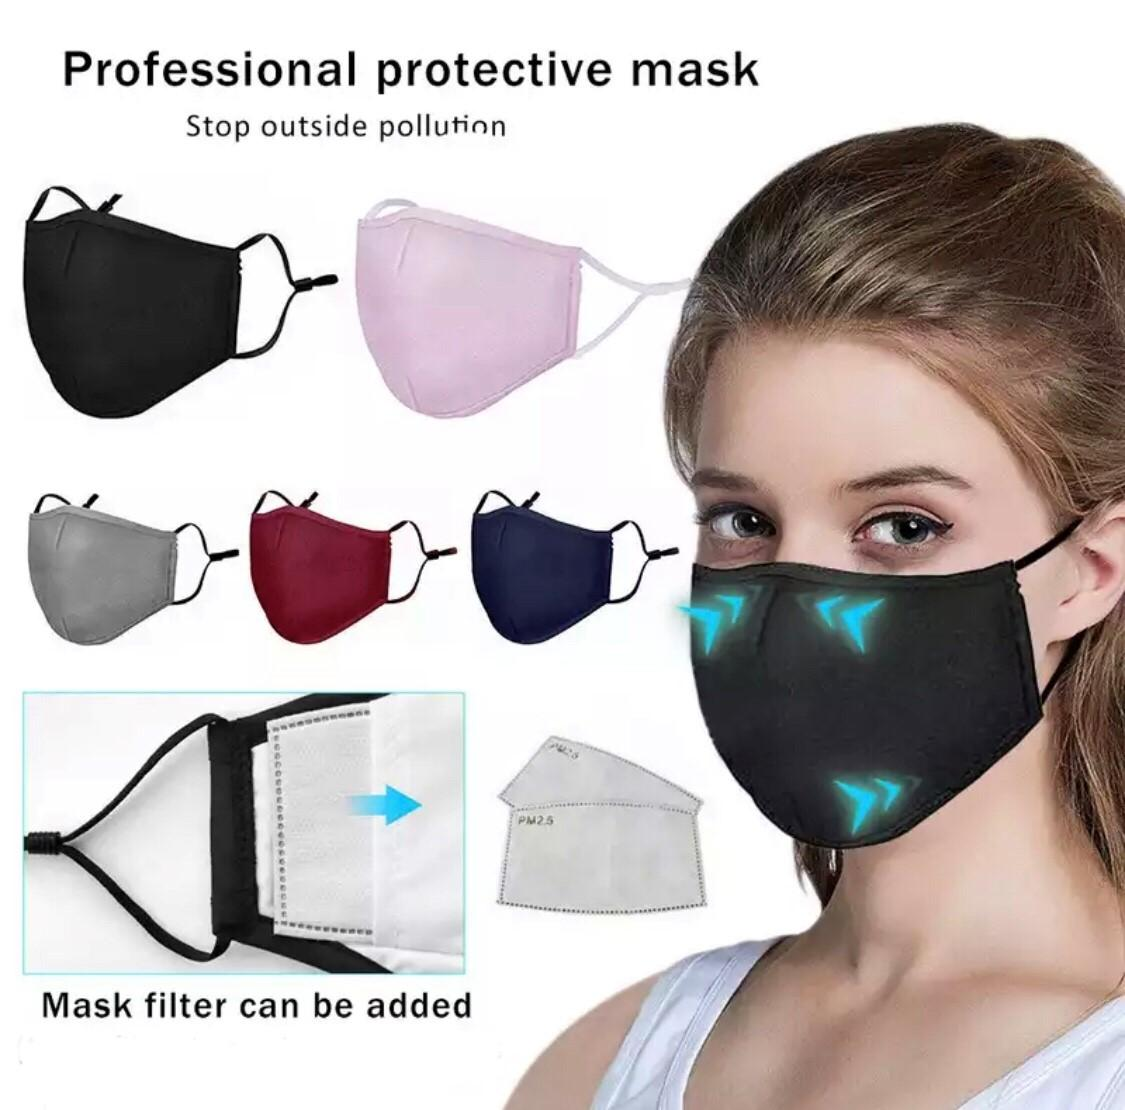 Cotton Face Mask with Nose Wire, Adjustable Ear, Pocket, Reusable,  Washable, N95, PM2.5 Filter, Essential - BSOS - Bort-Swiss Orthopedic Supply